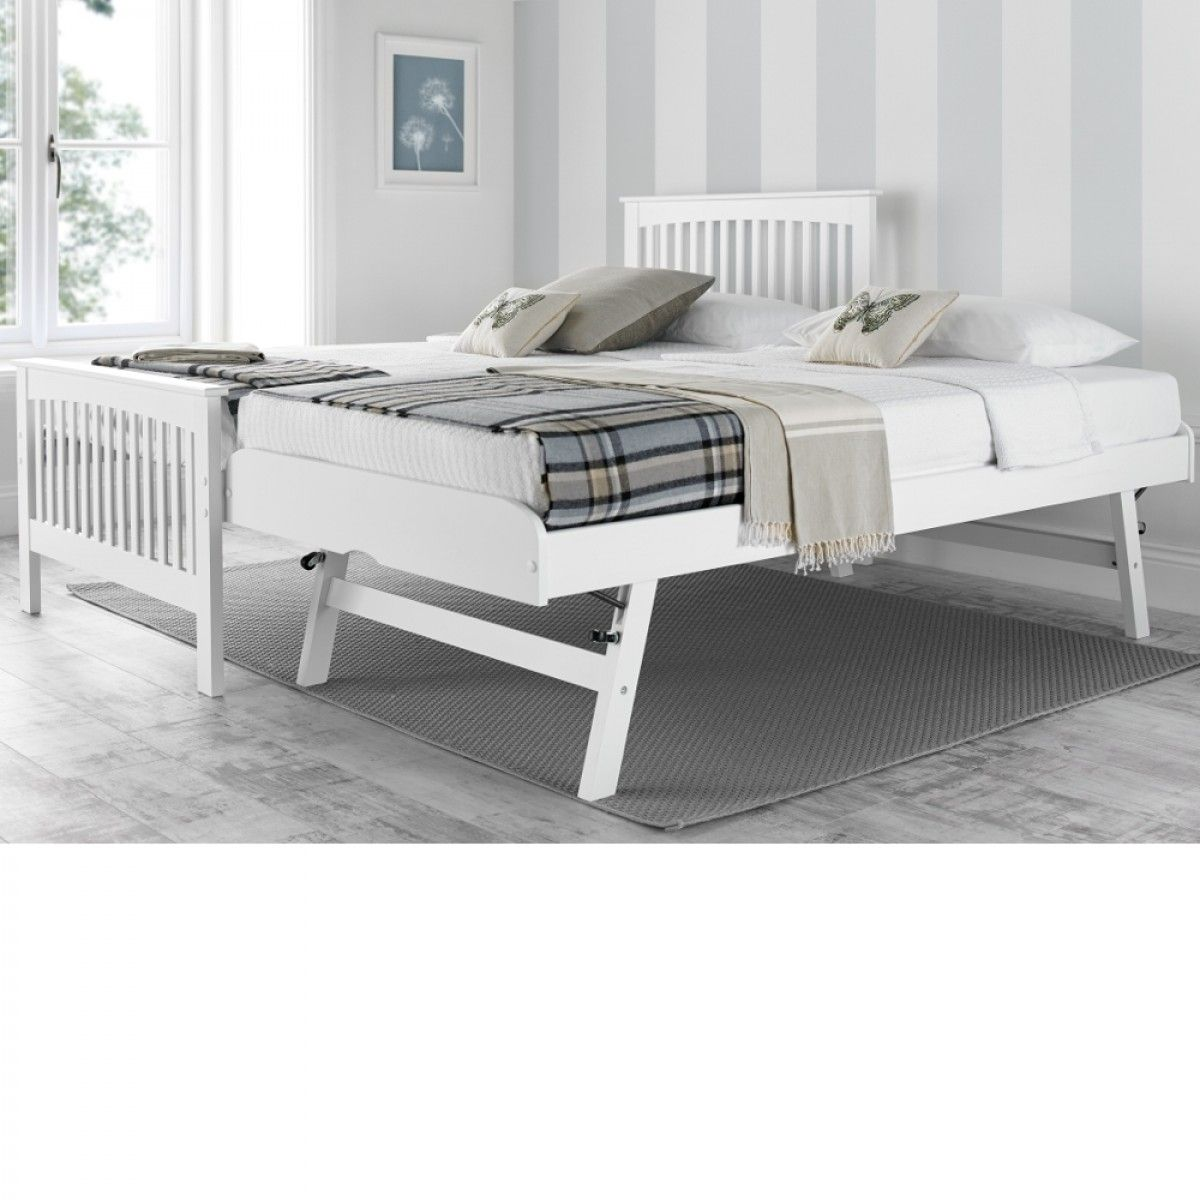 Toronto white wooden guest bed and trundle ft single spare room